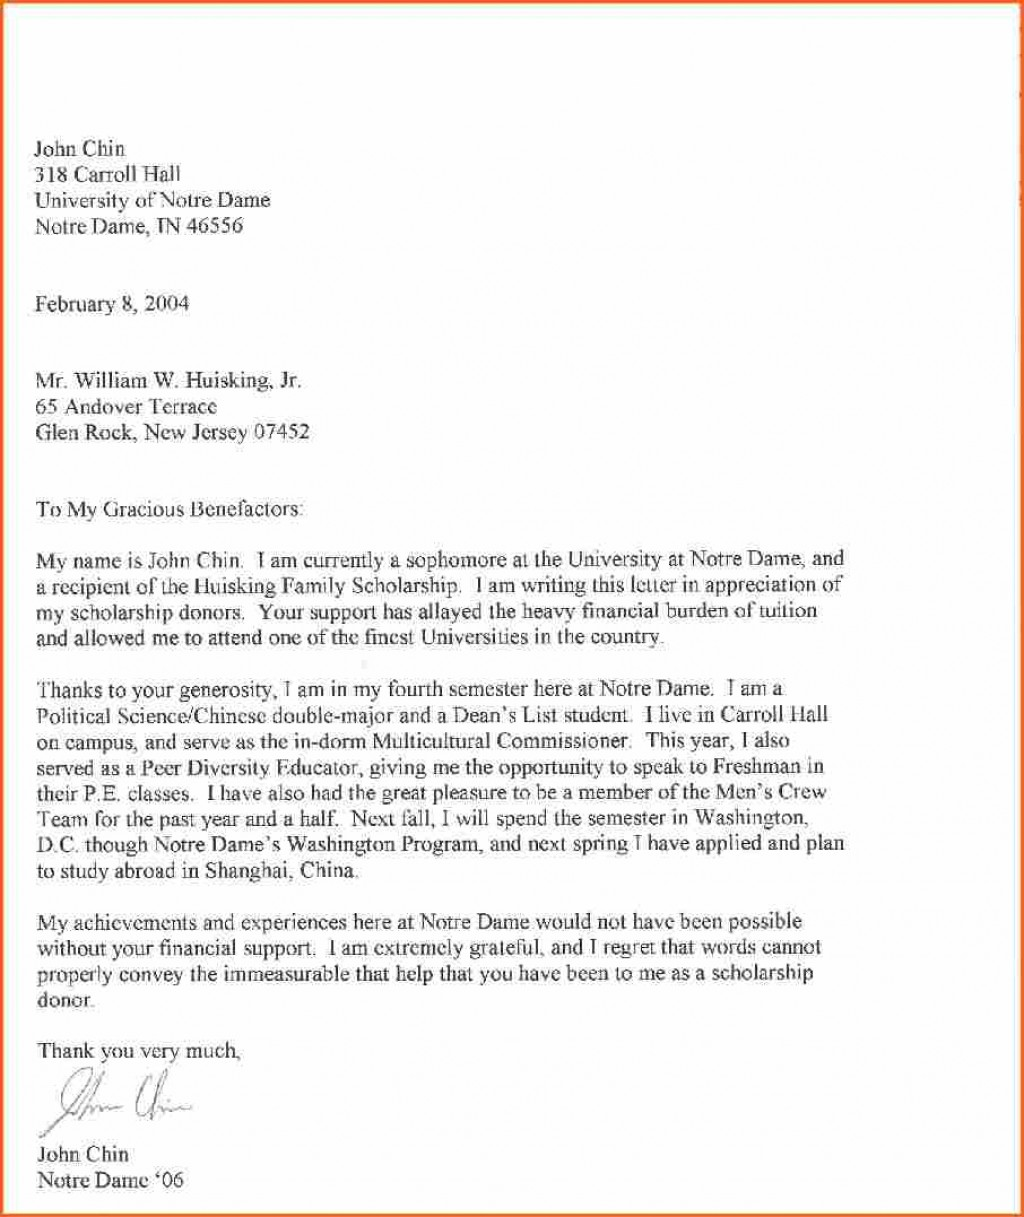 018 Essay Example Scholarship Application Letter Sample Staggering Samples Why You Deserve Questions Large